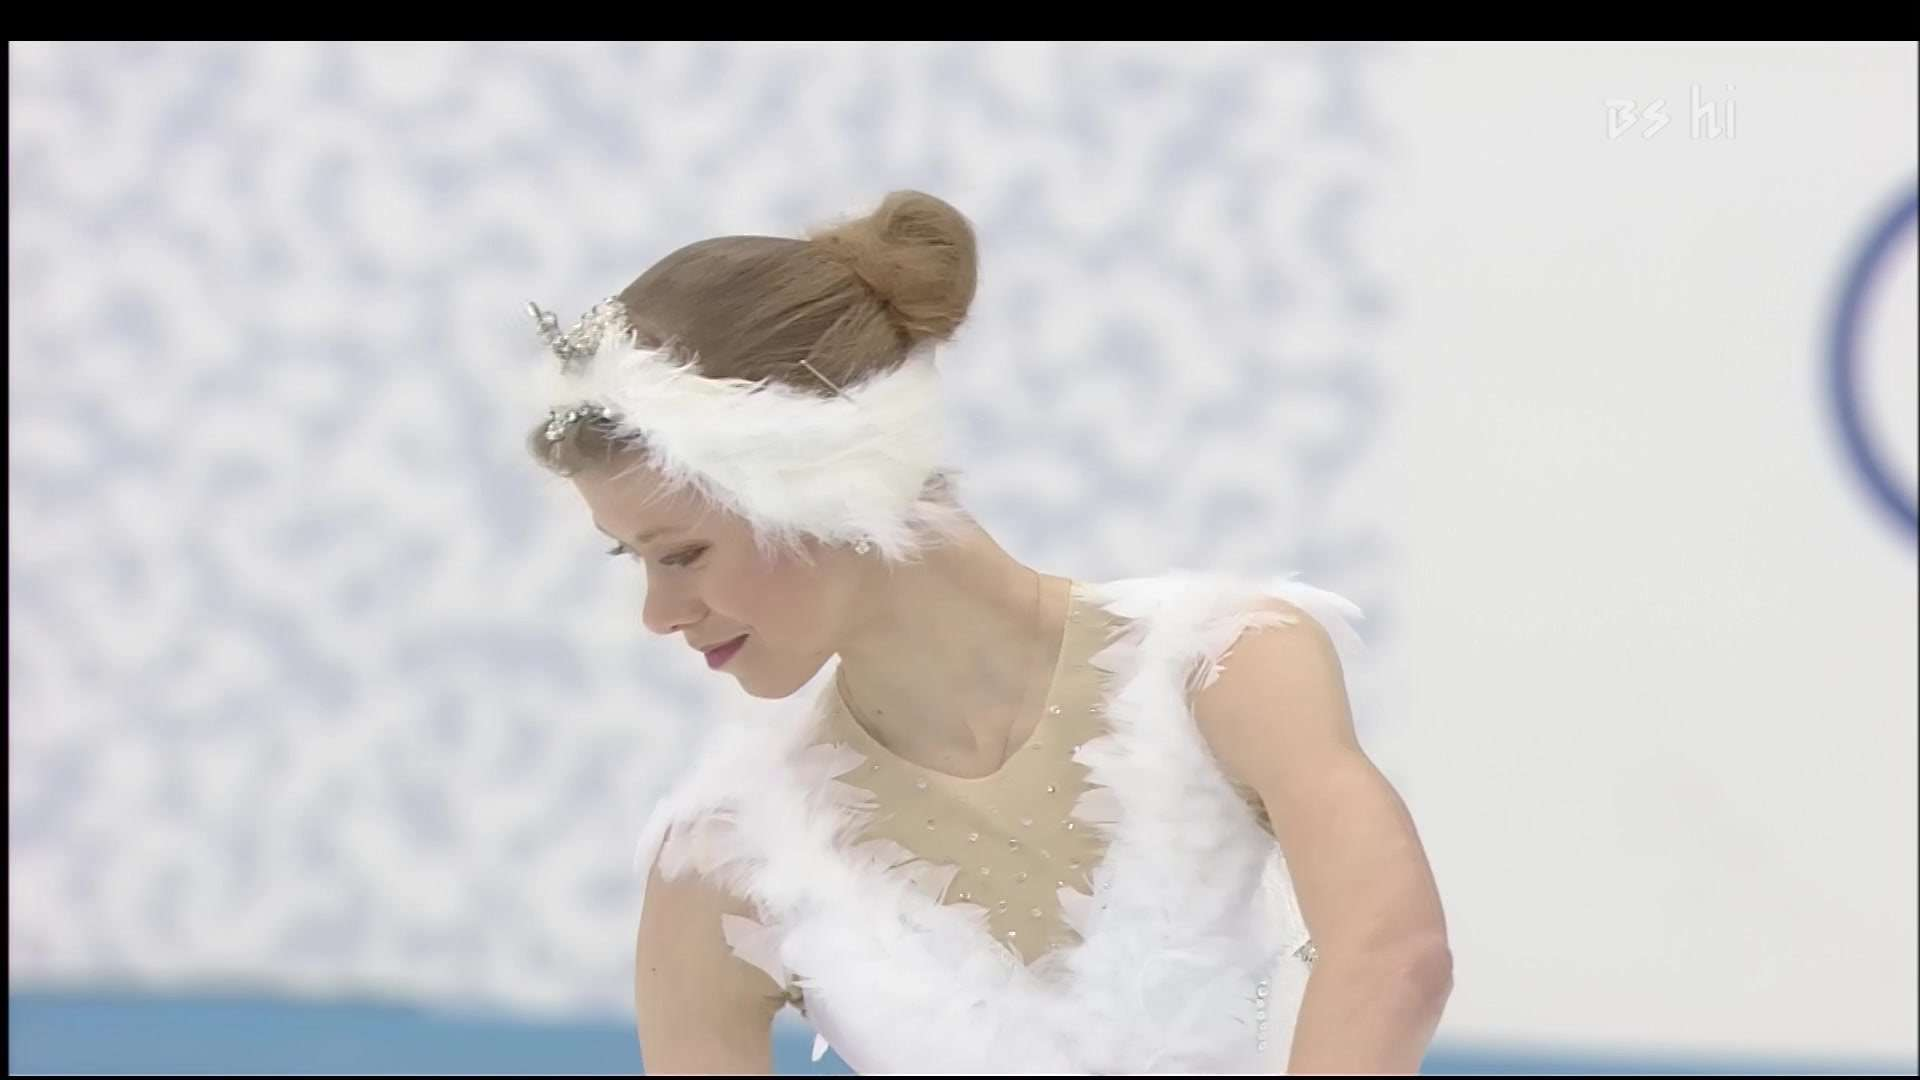 [HD] Oksana Baiul - 1994 Lillehammer Olympic - Exhibition - The Swan - YouTube